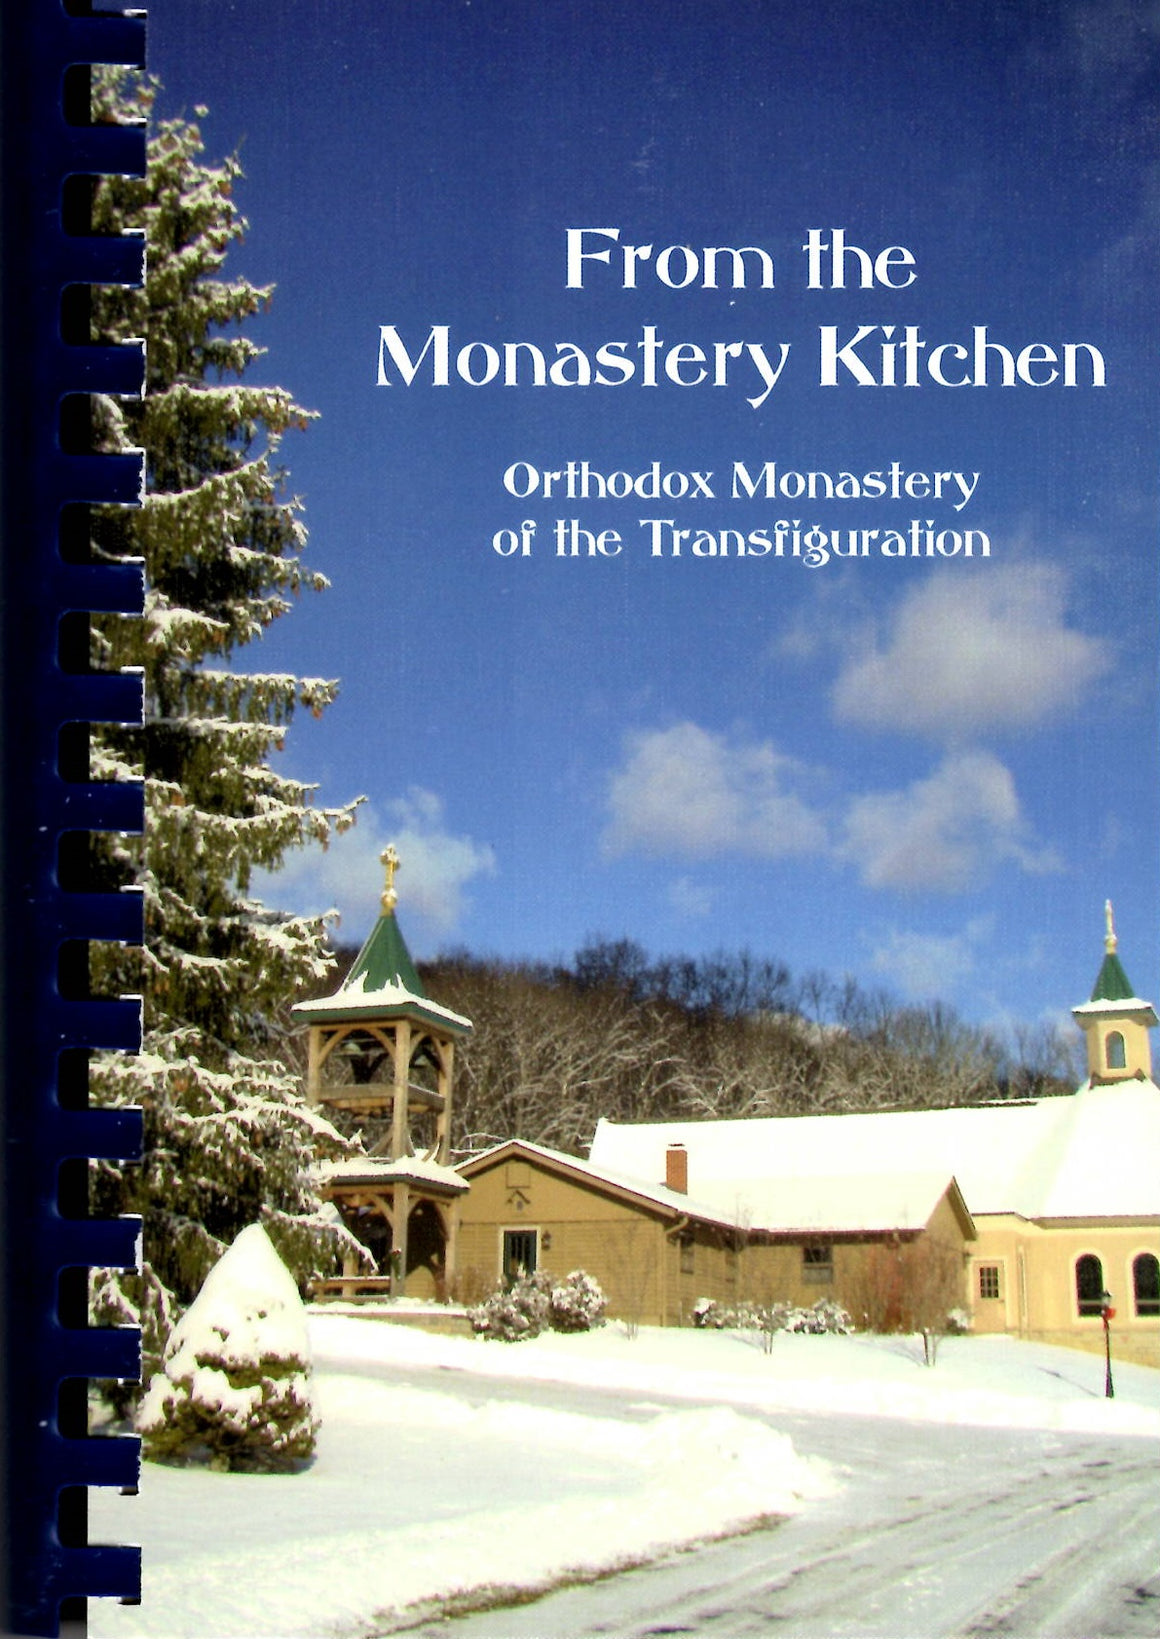 From the Monastery Kitchen - Holy Cross Monastery